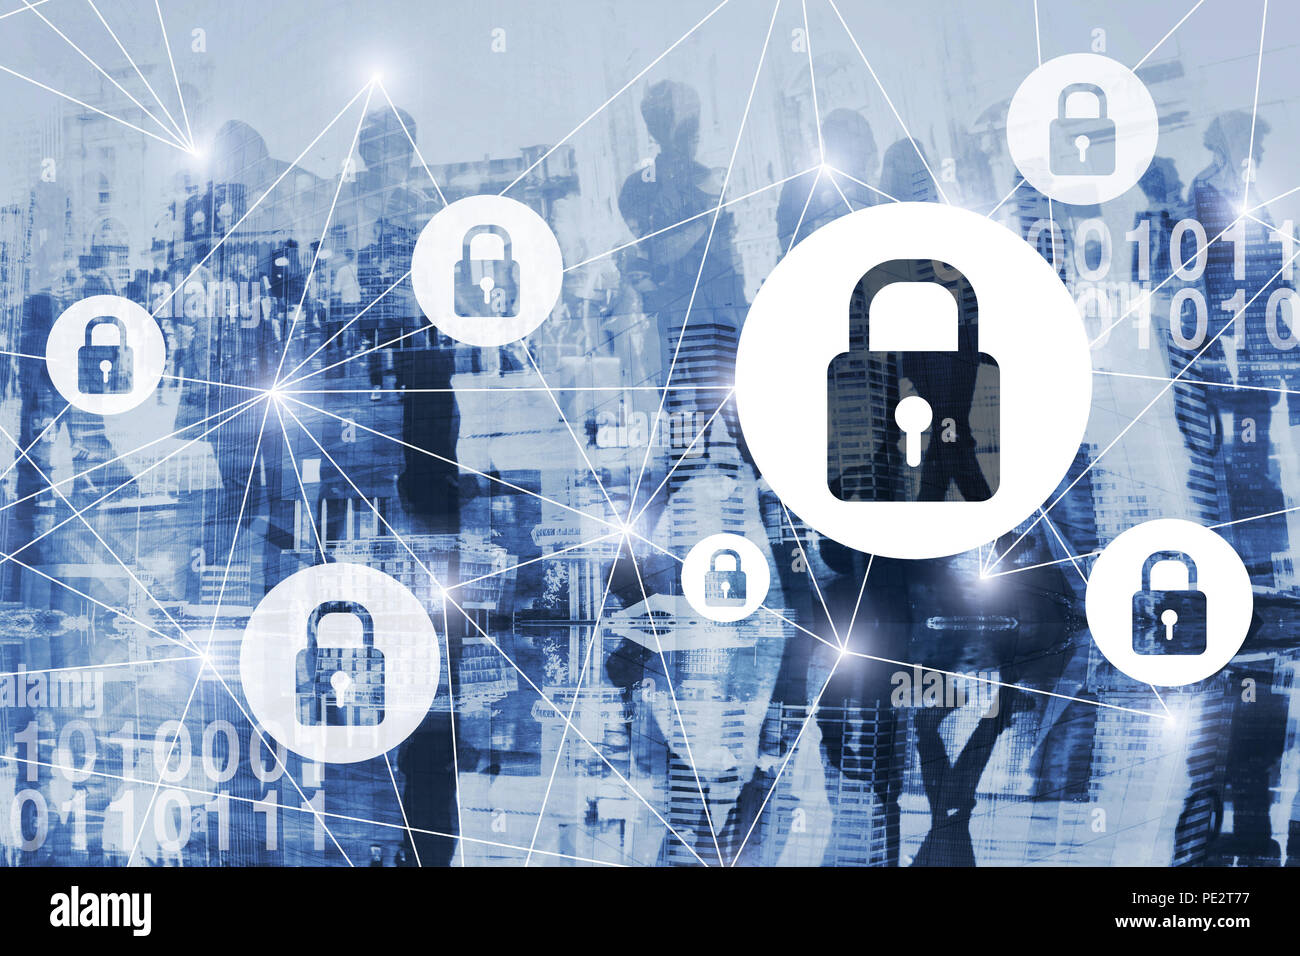 cyber security or gdpr concept, cybersecurity, personal information and private digital data protection online, virtual locks, secured internet connec - Stock Image